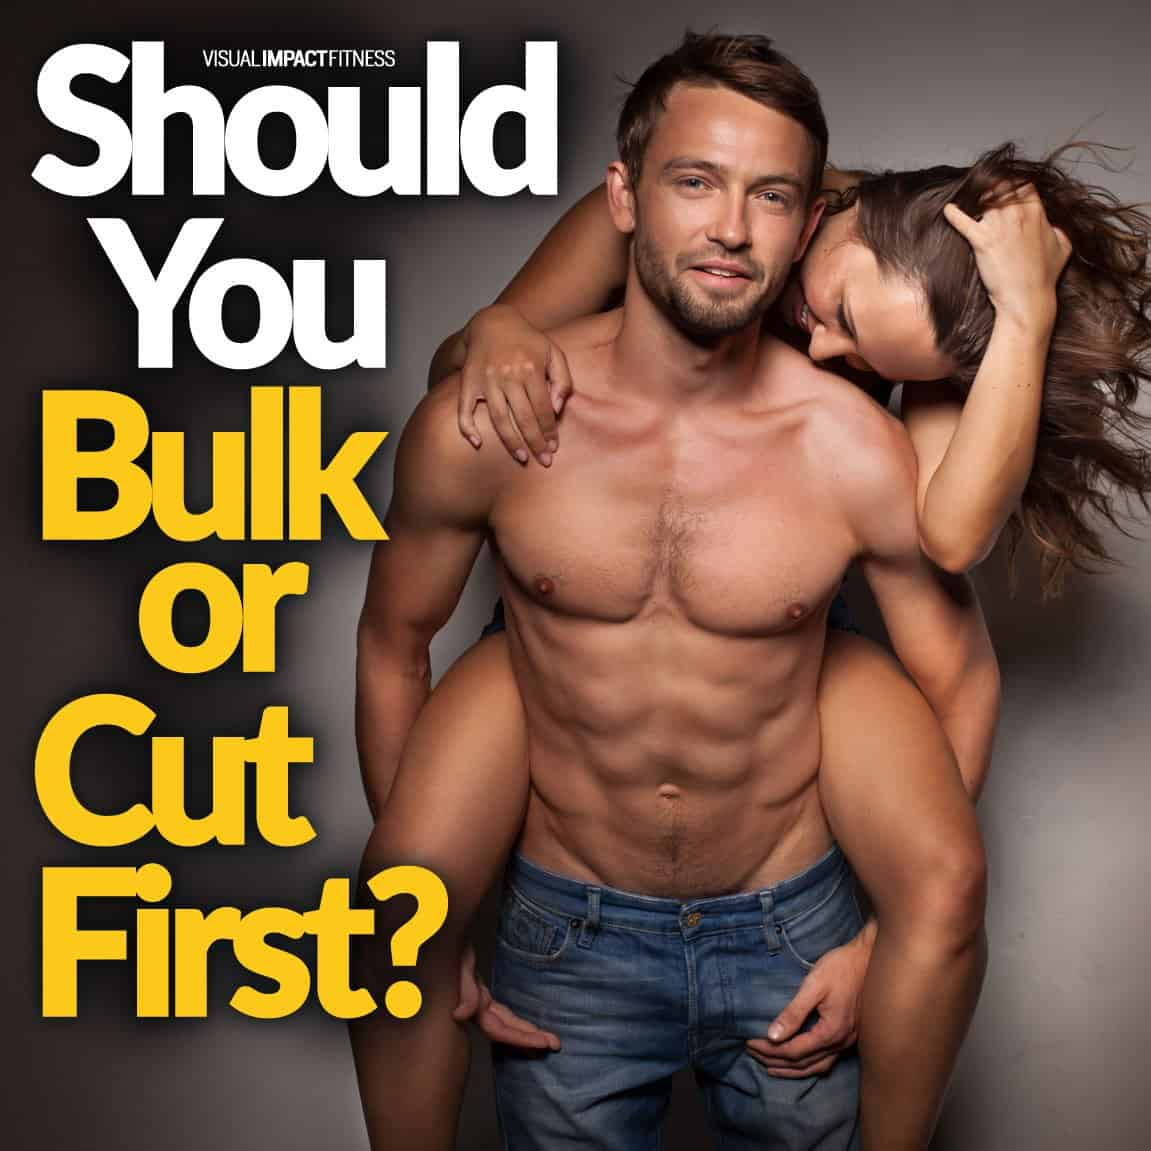 Should You Bulk or Cut First